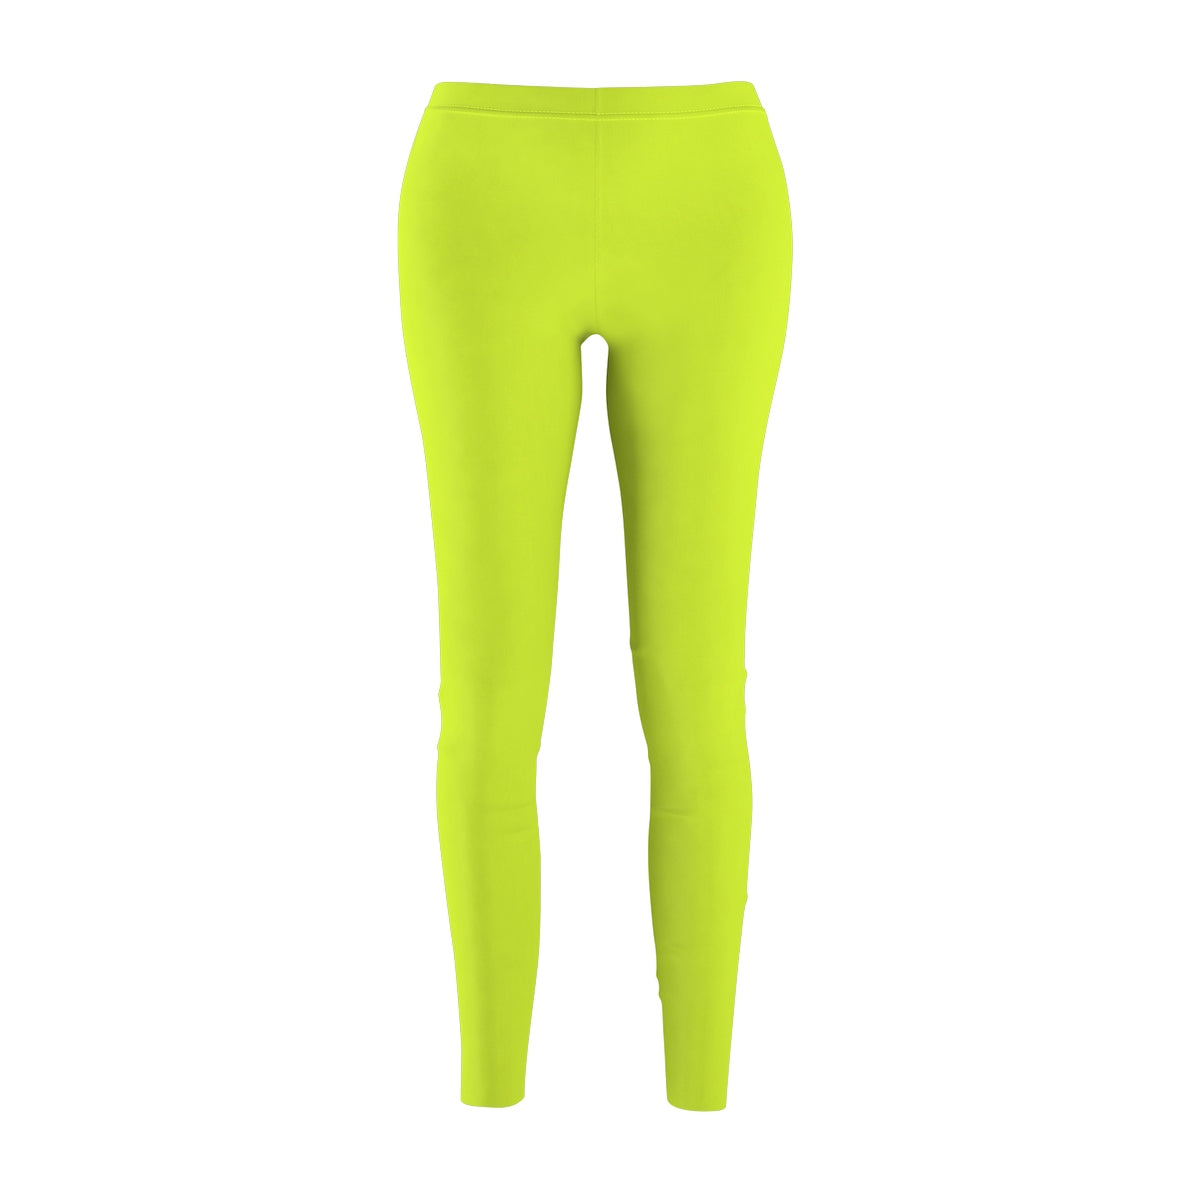 Lime Green Solid Color Women's Casual Leggings - Made in USA (US Size: XS-2XL)-Casual Leggings-M-Heidi Kimura Art LLC